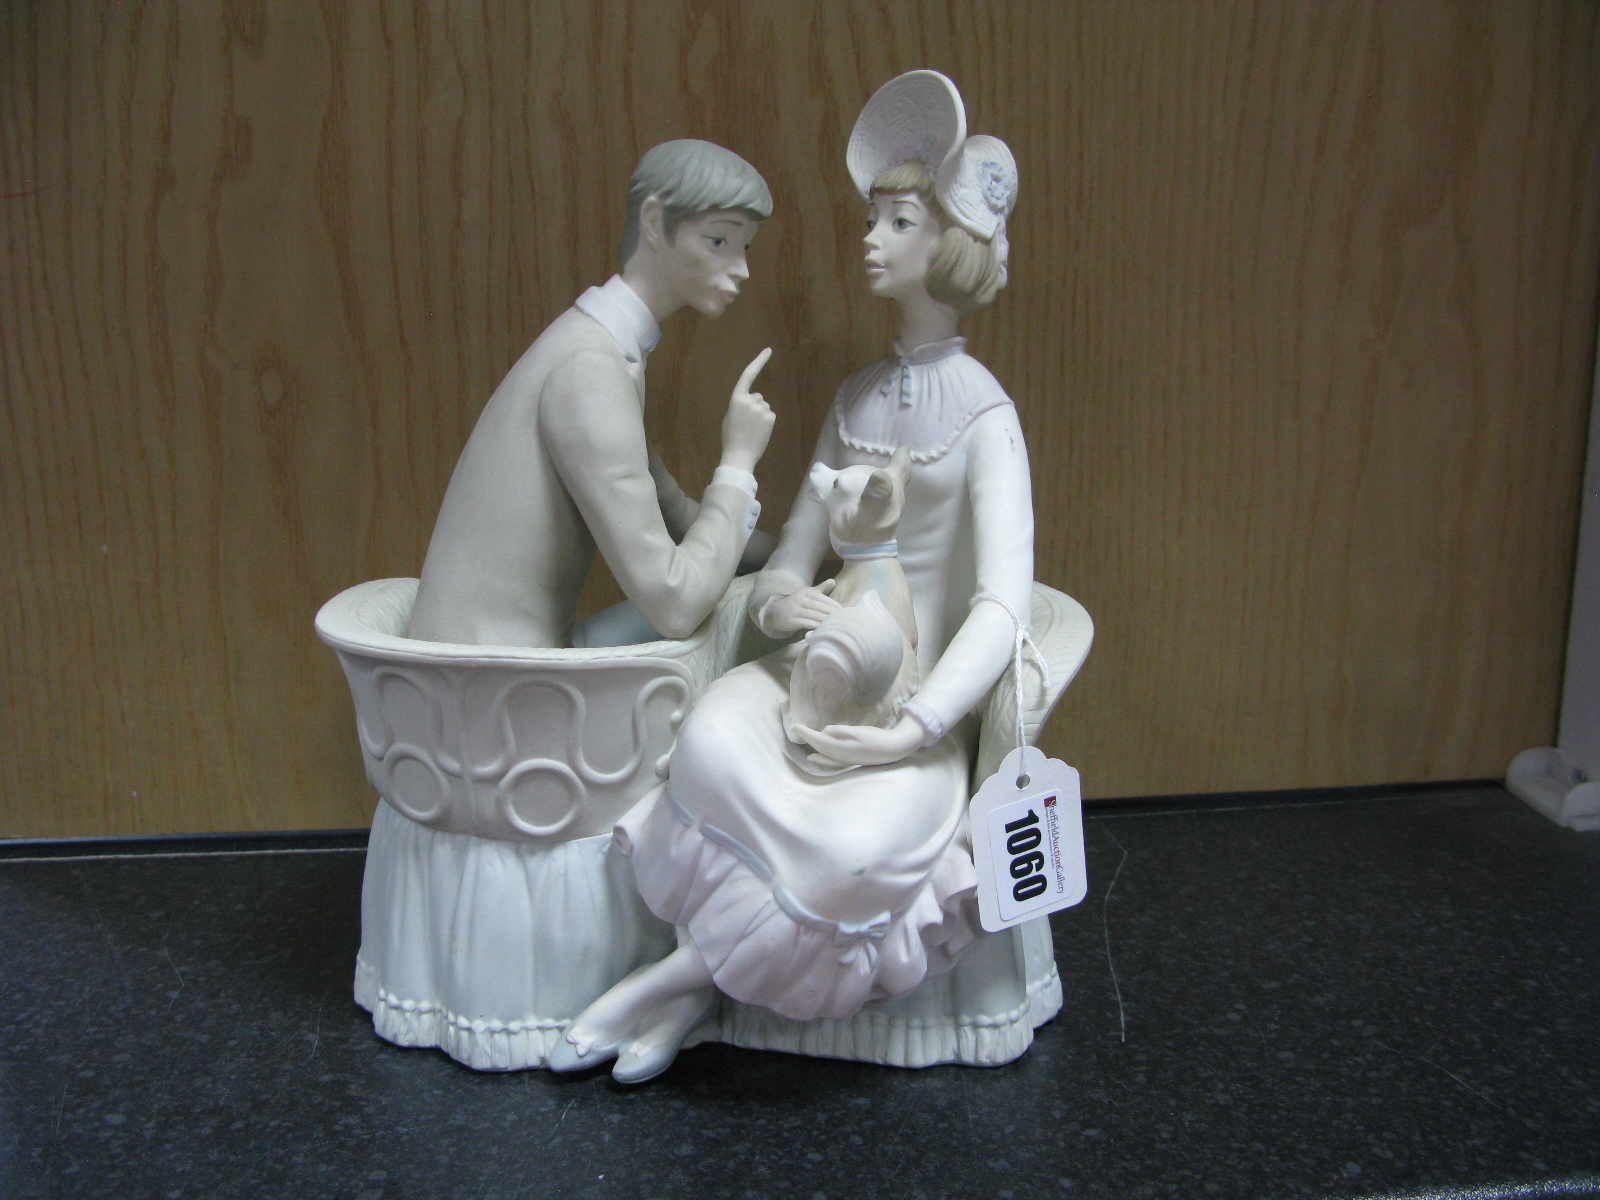 Lot 1060 - Lladro Pottery Figure Group, unglazed, featuring seated courting couple with dog, 26cm high.